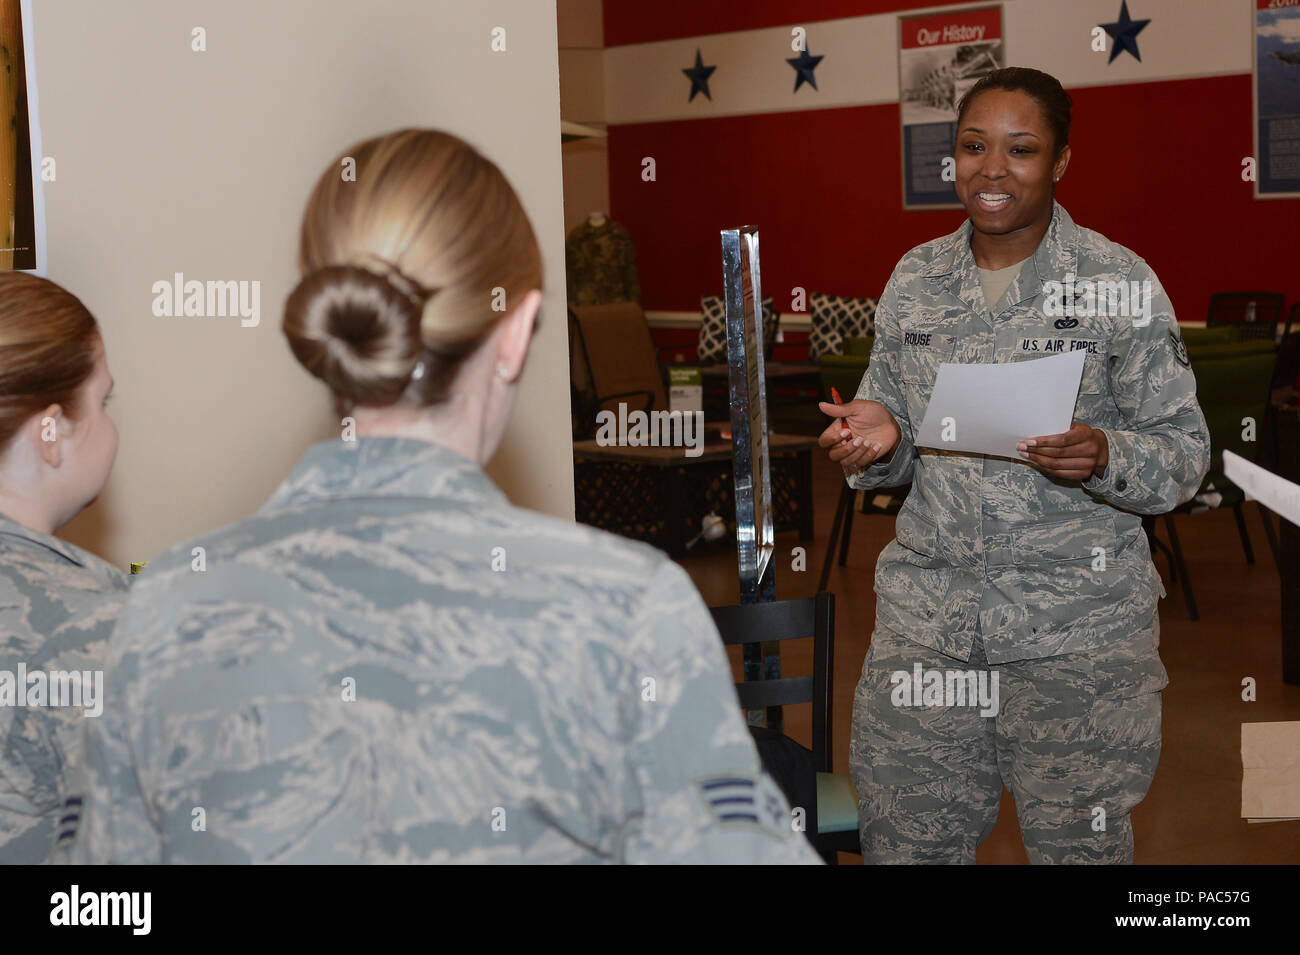 U.S. Air Force Staff Sgt. Catrina Rouse, 20th Civil Engineer Squadron noncommissioned officer in charge of plans and operations, explains the rules for the Women's History Month scavenger hunt to participants at Shaw Air Force Base, S.C., March 4, 2016. The scavenger hunt was the first event held by the Women's History Month committee this year, and led participants to various buildings around base in search of clues relating to prominent women in U.S. history. (U.S. Air Force photo by Senior Airman Zade Vadnais) - Stock Image